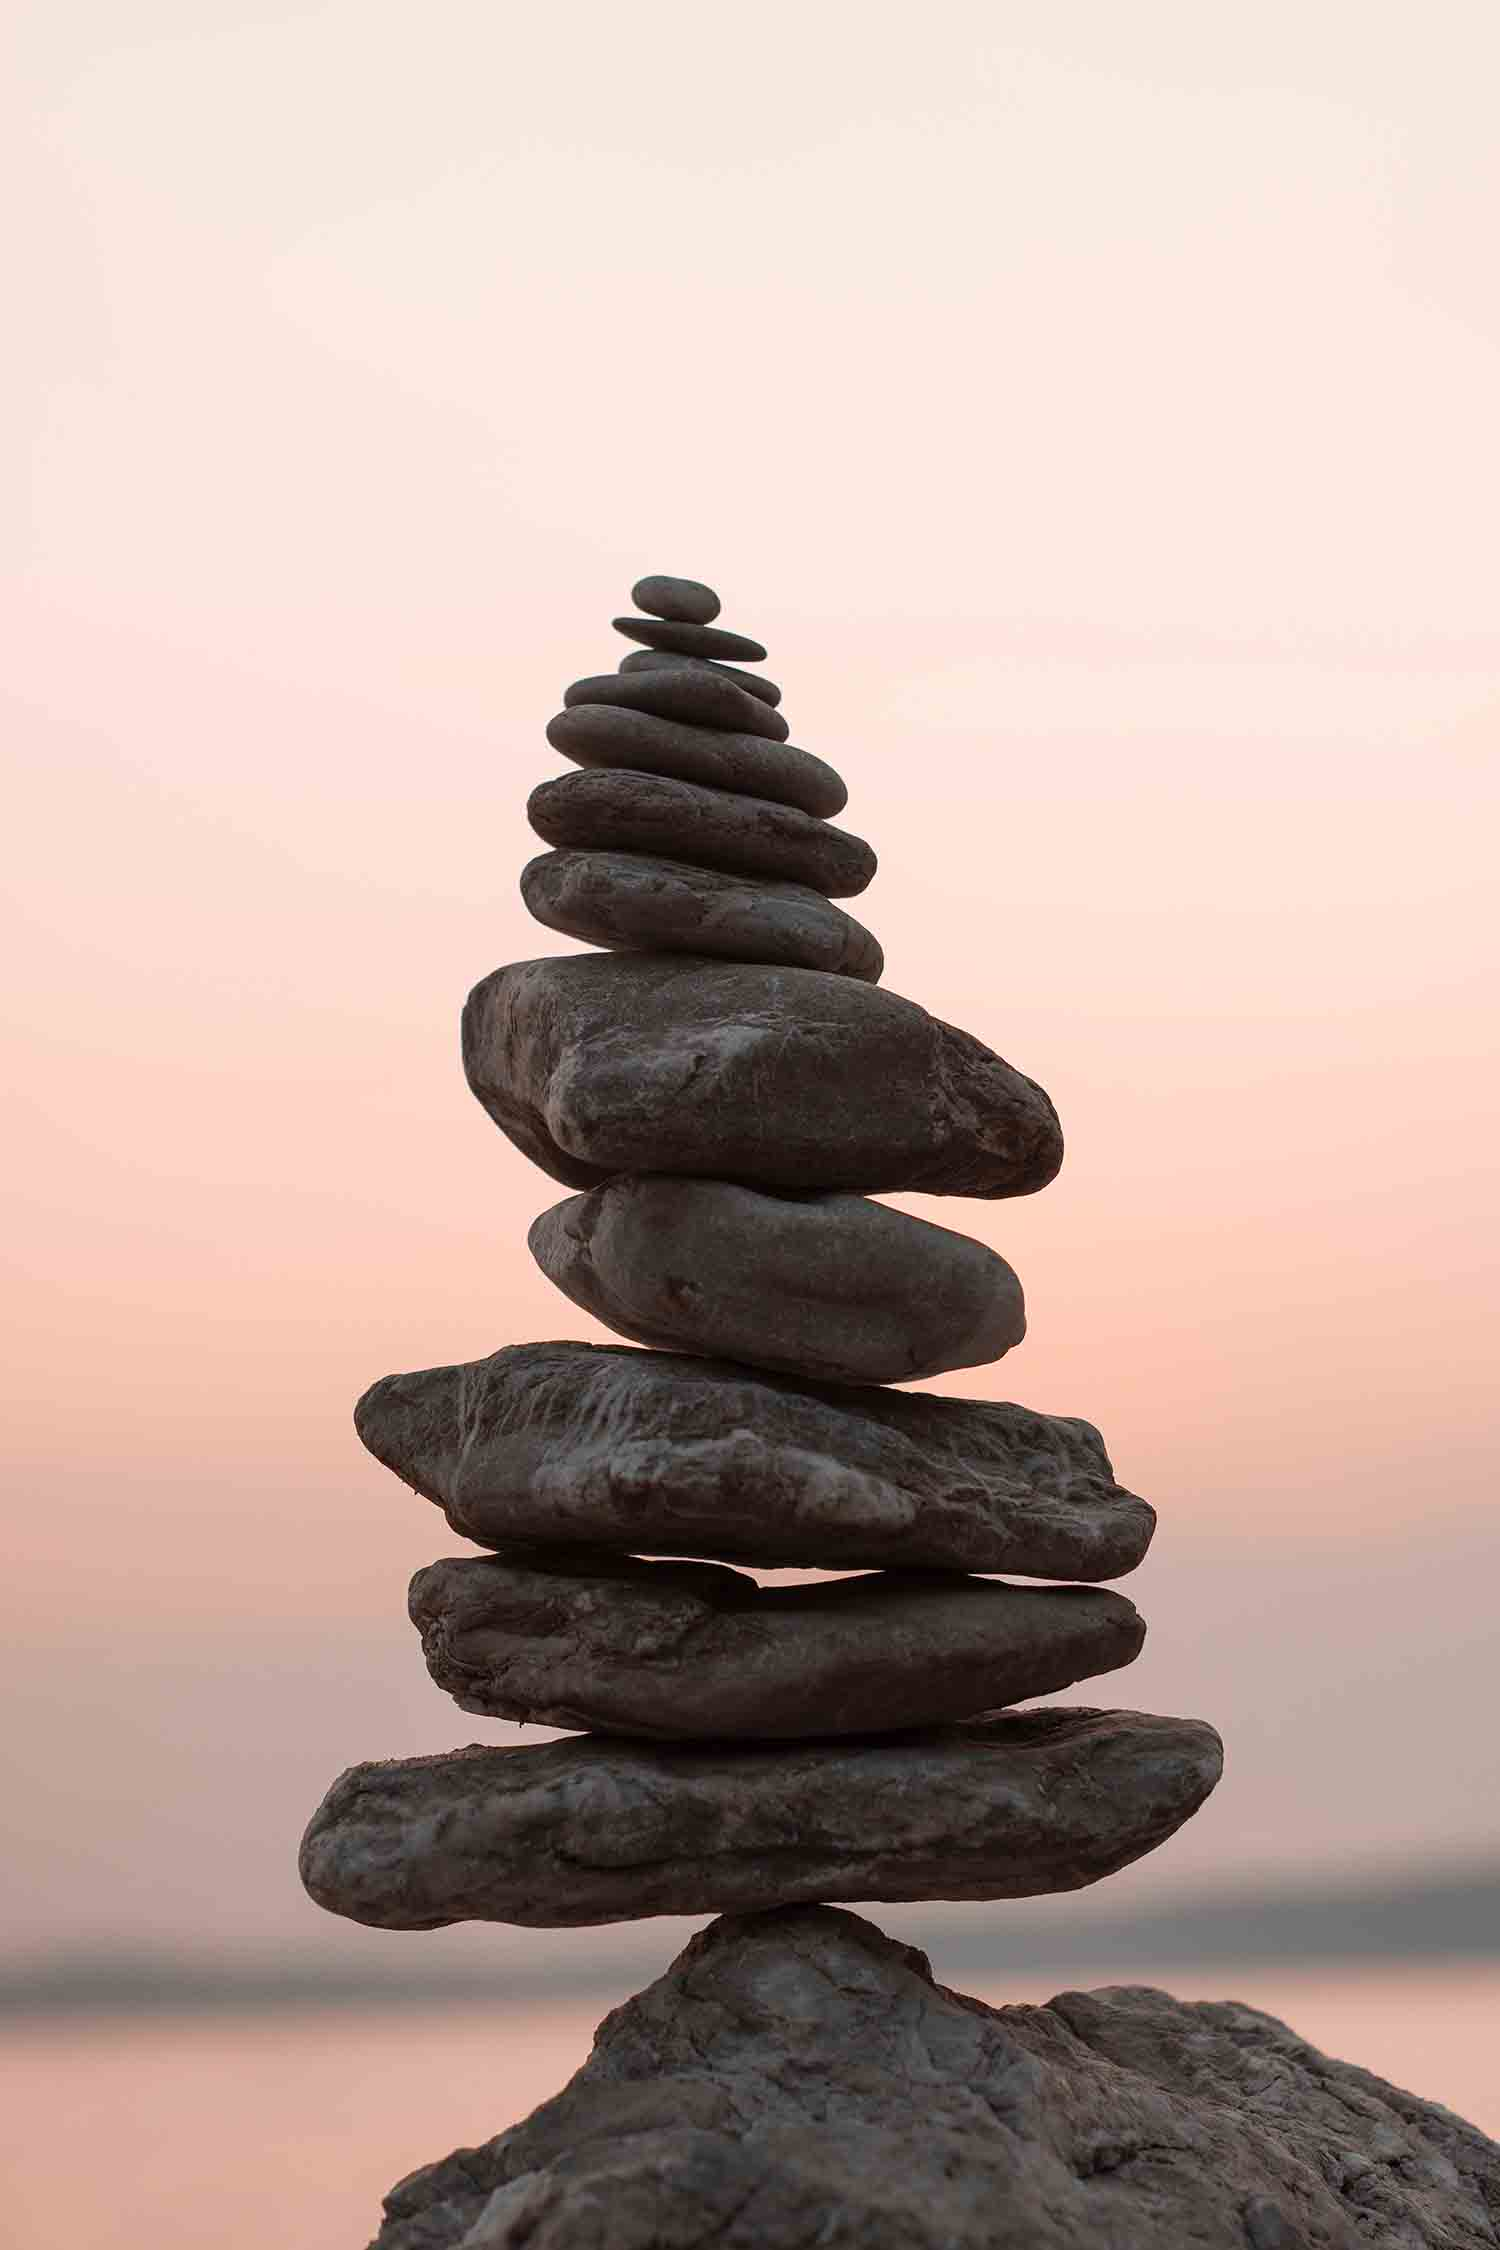 psyche-and-soma-psychotherapy-brea-ca-cairn